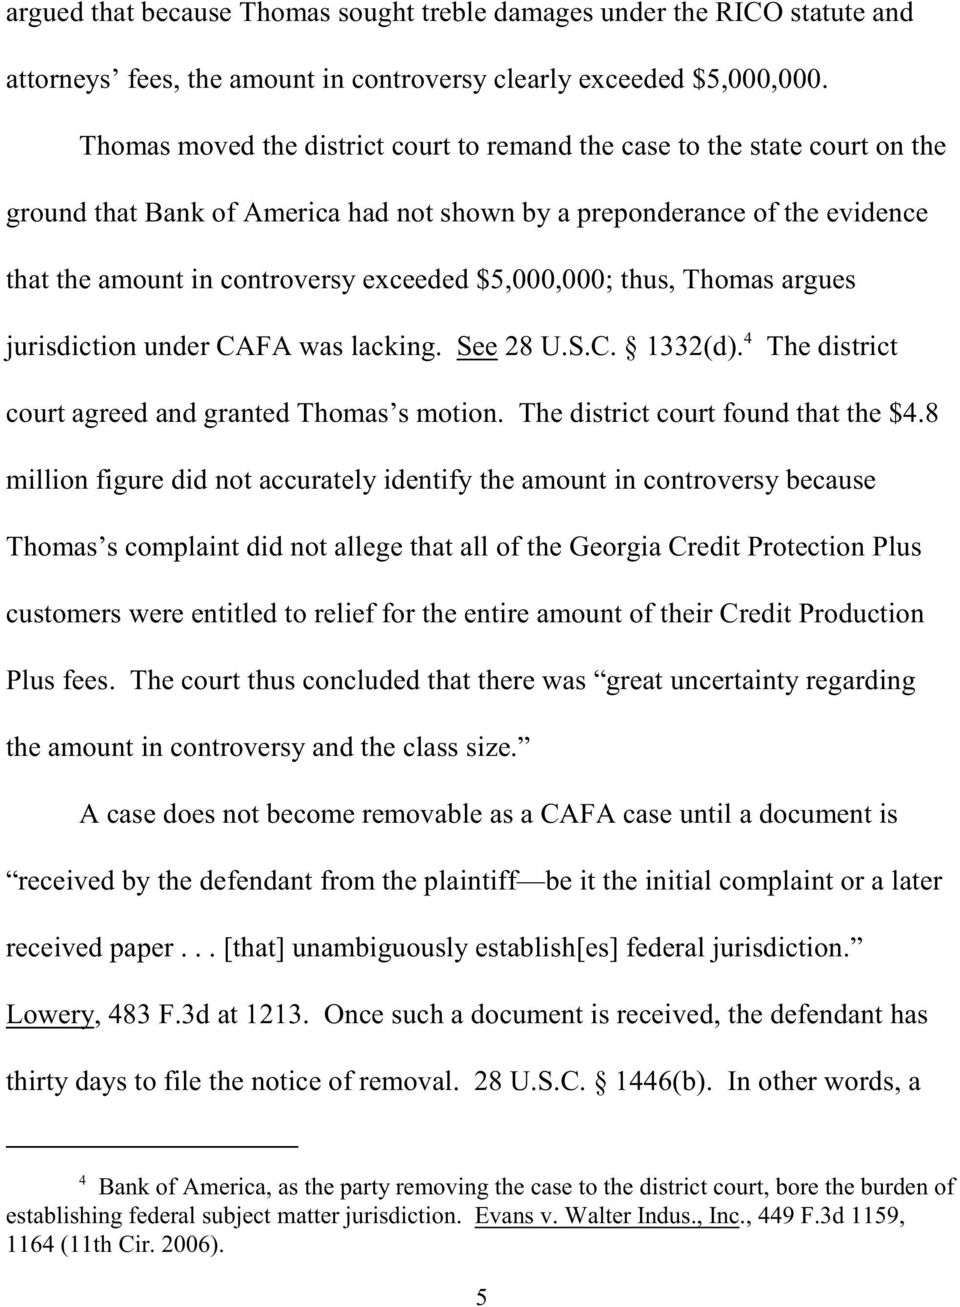 $5,000,000; thus, Thomas argues 4 jurisdiction under CAFA was lacking. See 28 U.S.C. 1332(d). The district court agreed and granted Thomas s motion. The district court found that the $4.